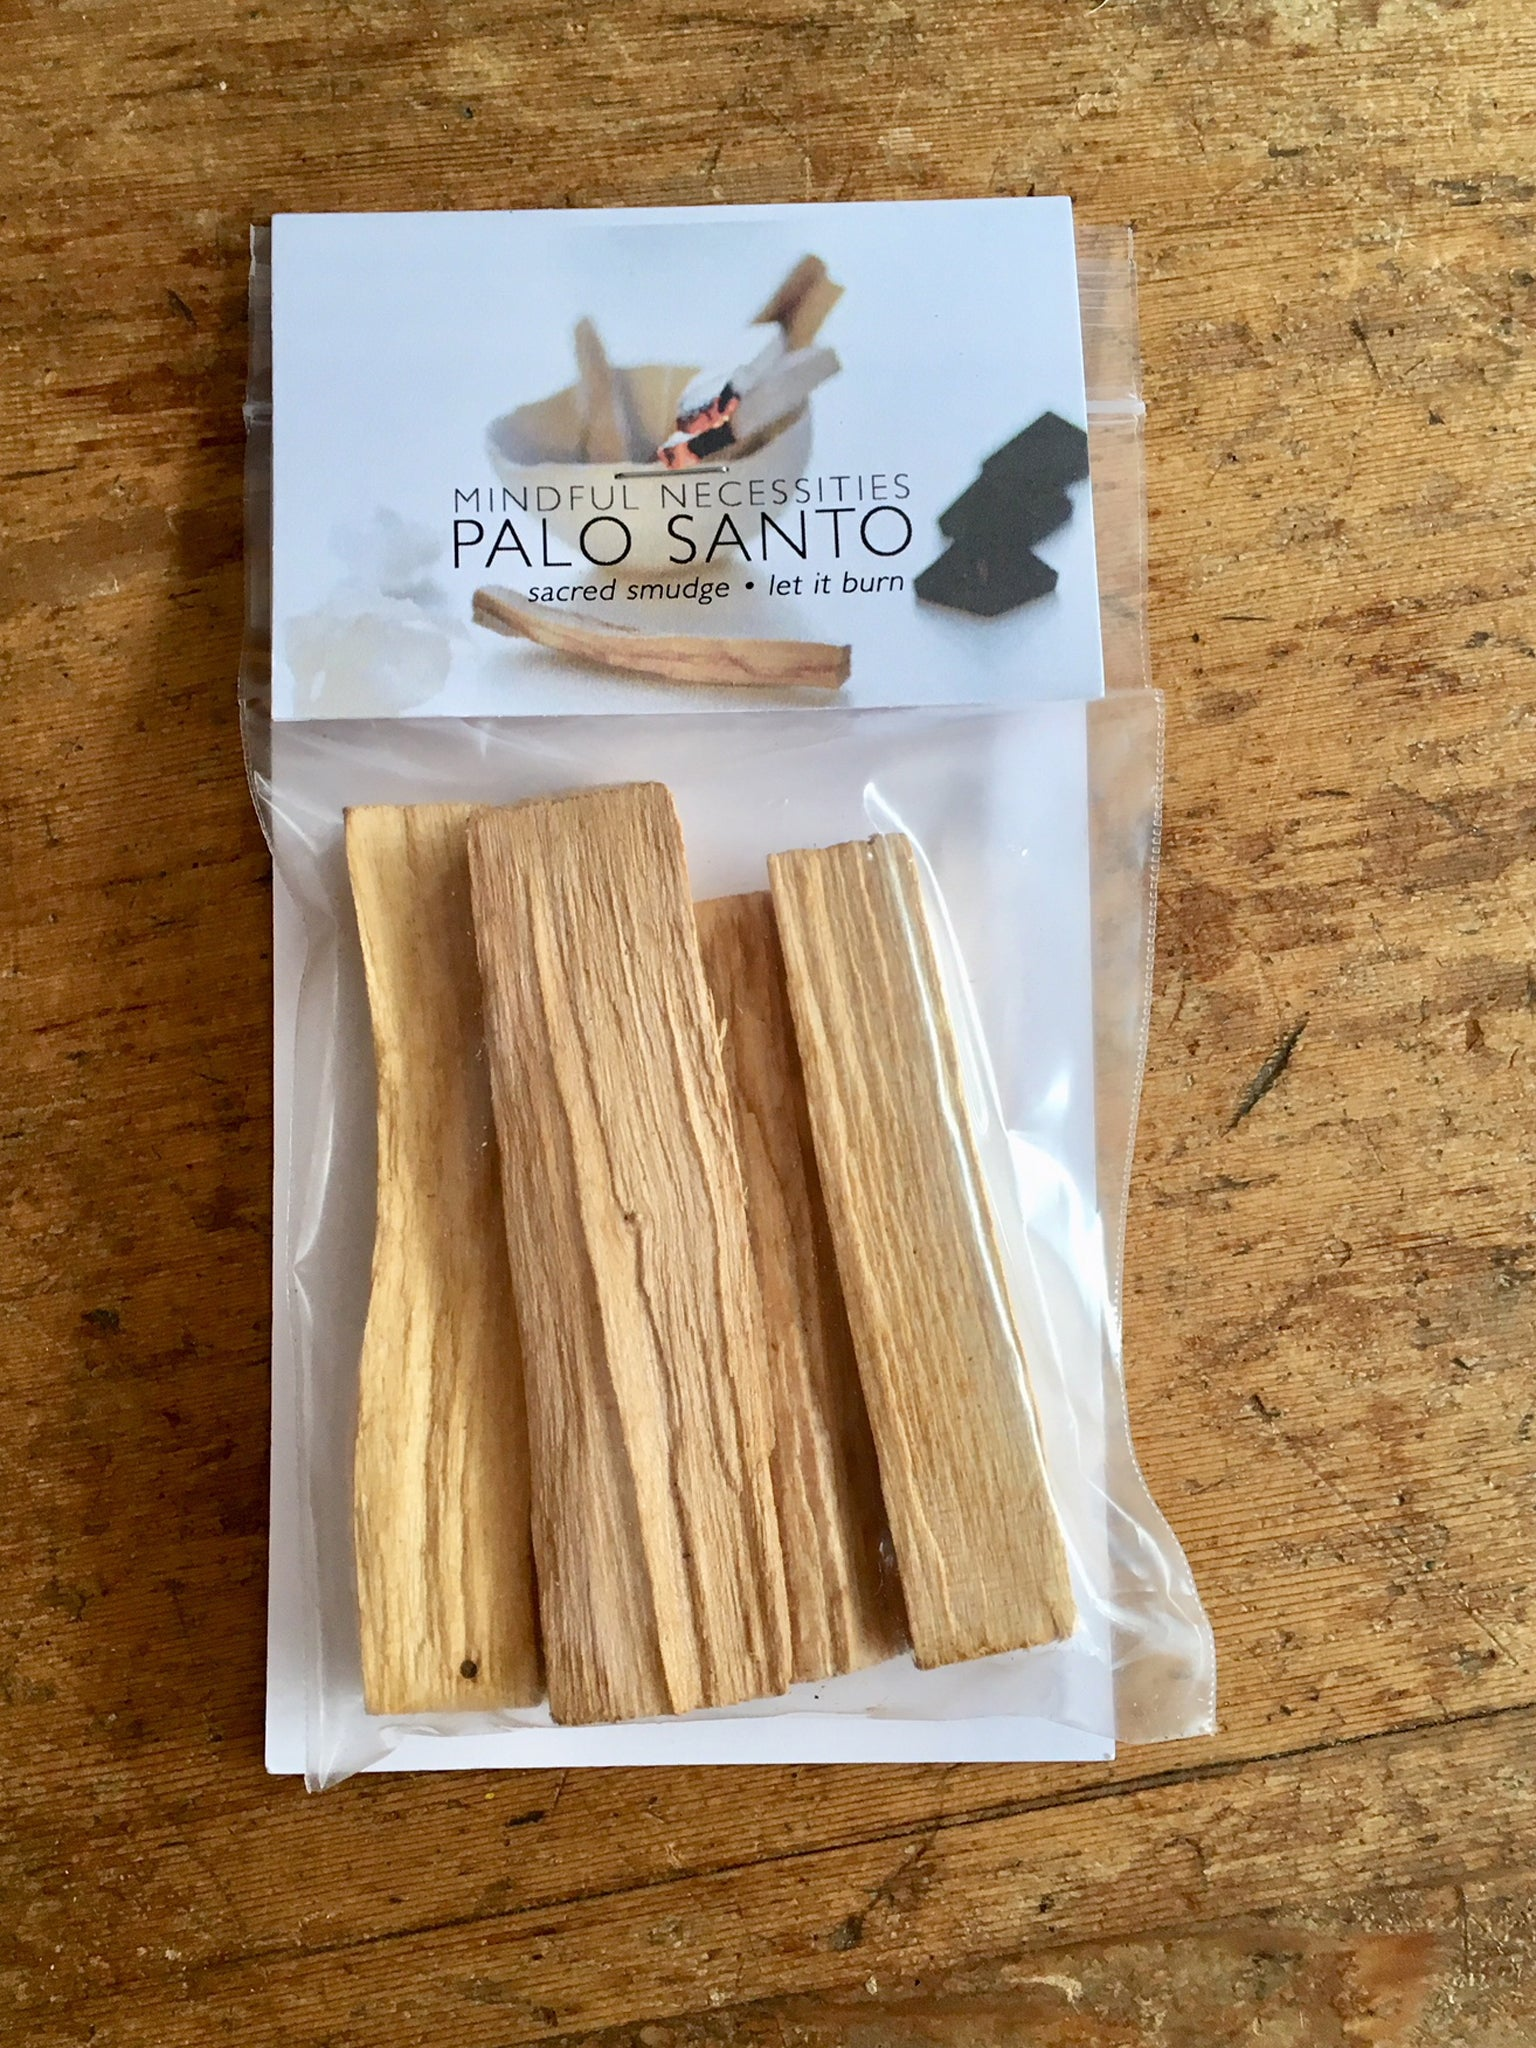 Palo Santo - Smudge - Mindful Necessities